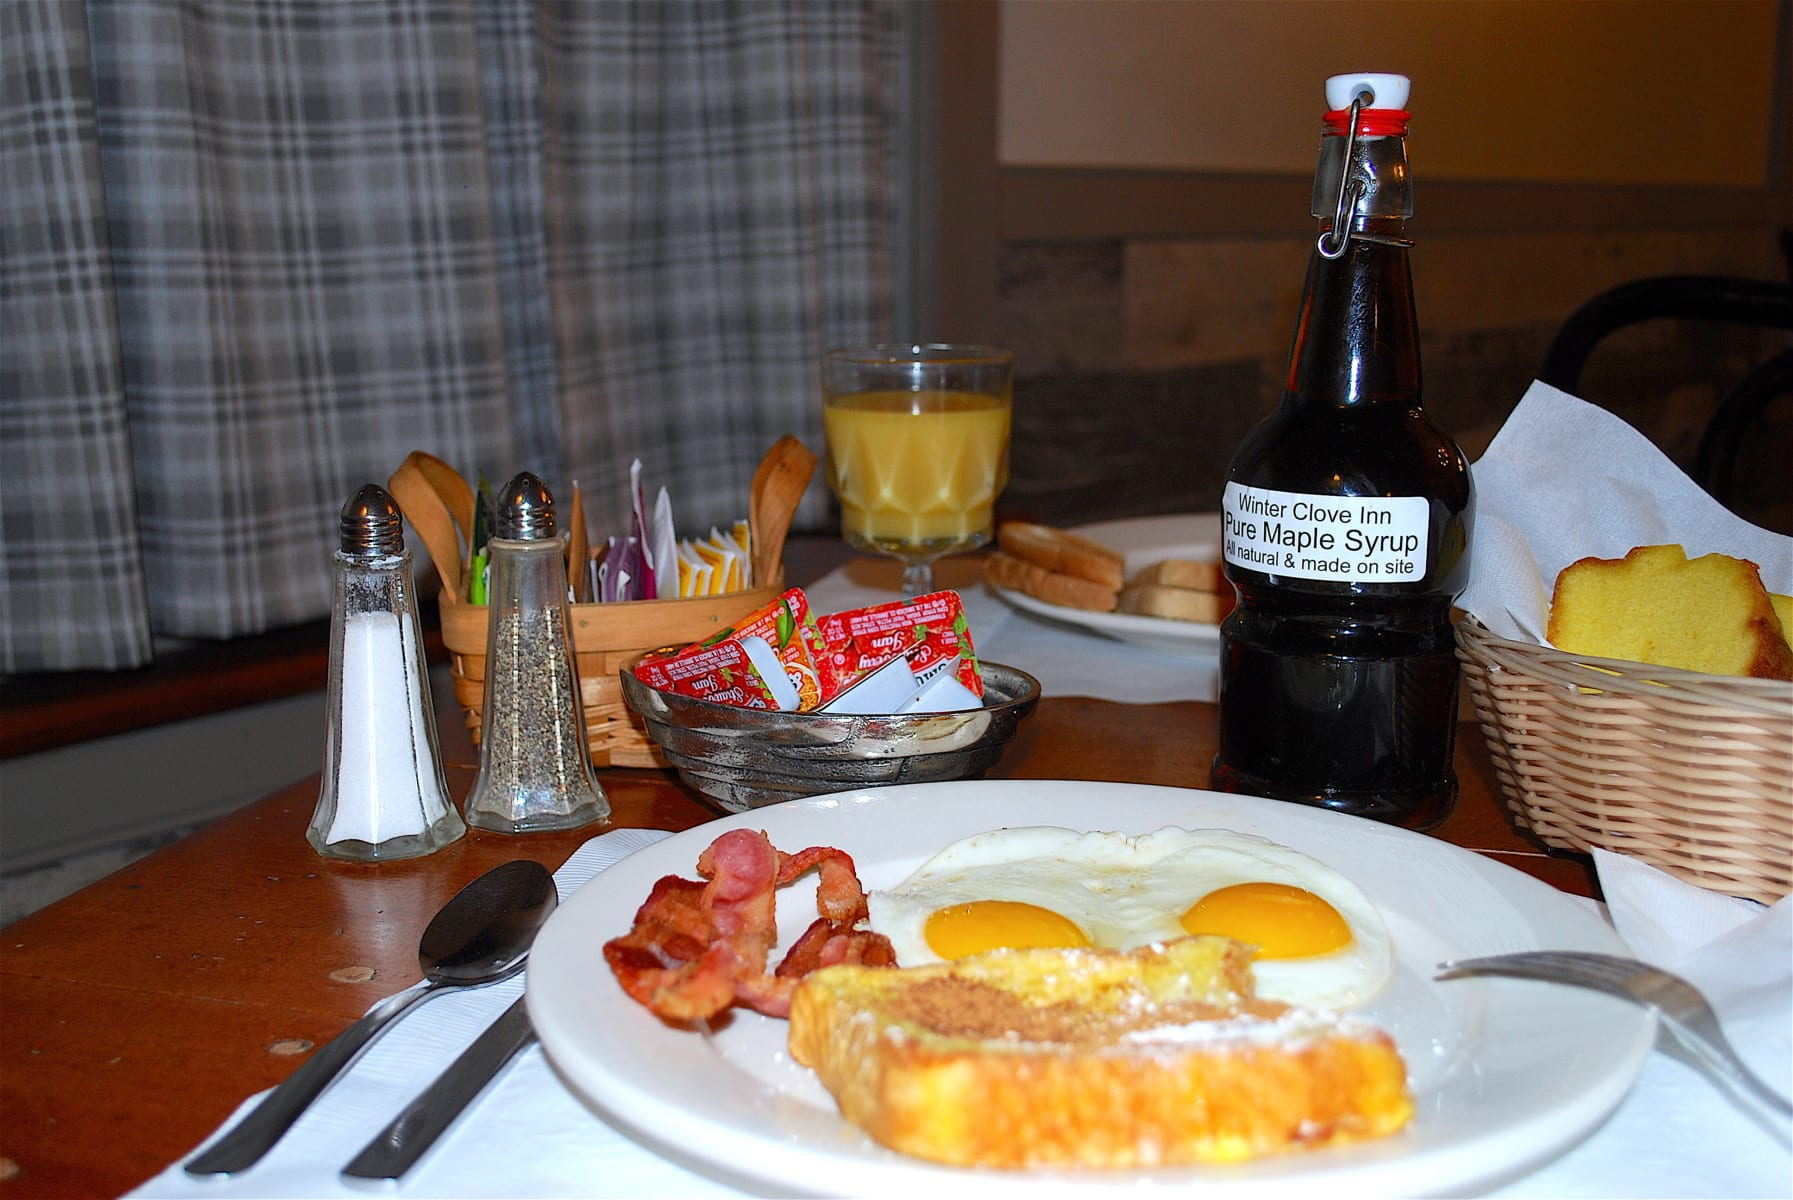 Full country breakfast with eggs, french toast, and syrup.